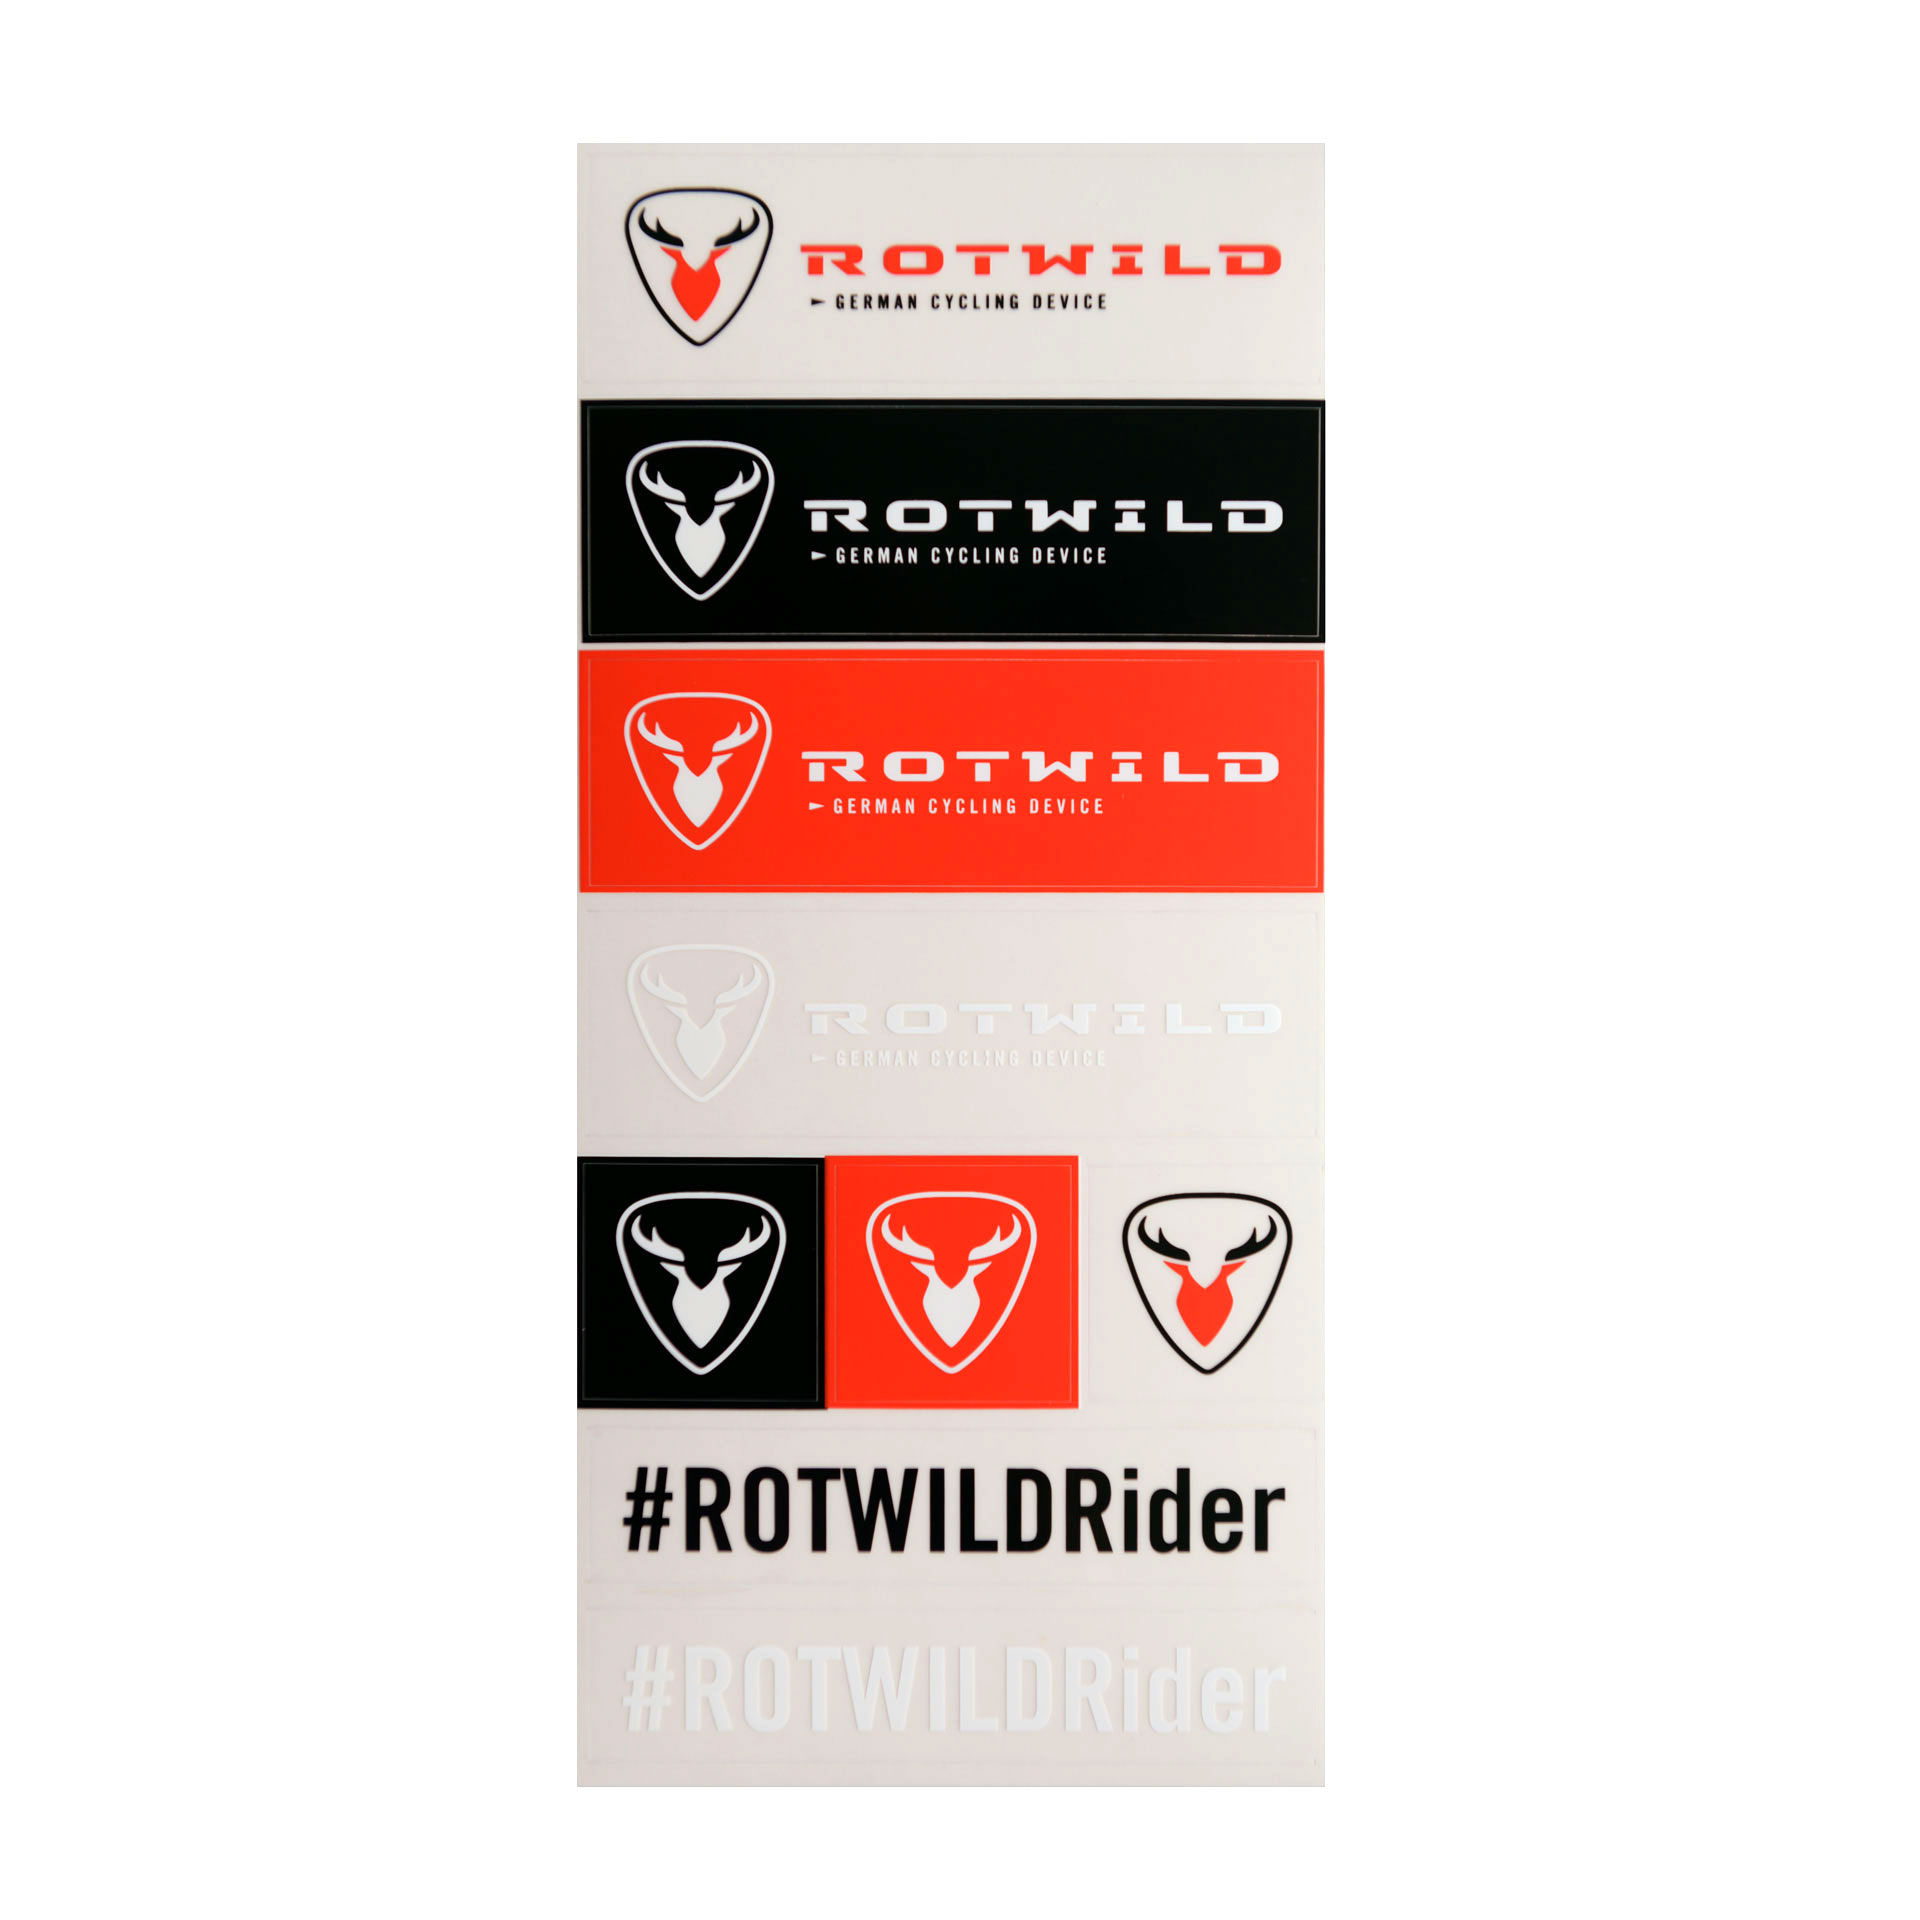 ROTWILD STICKERSET - Radsport 360